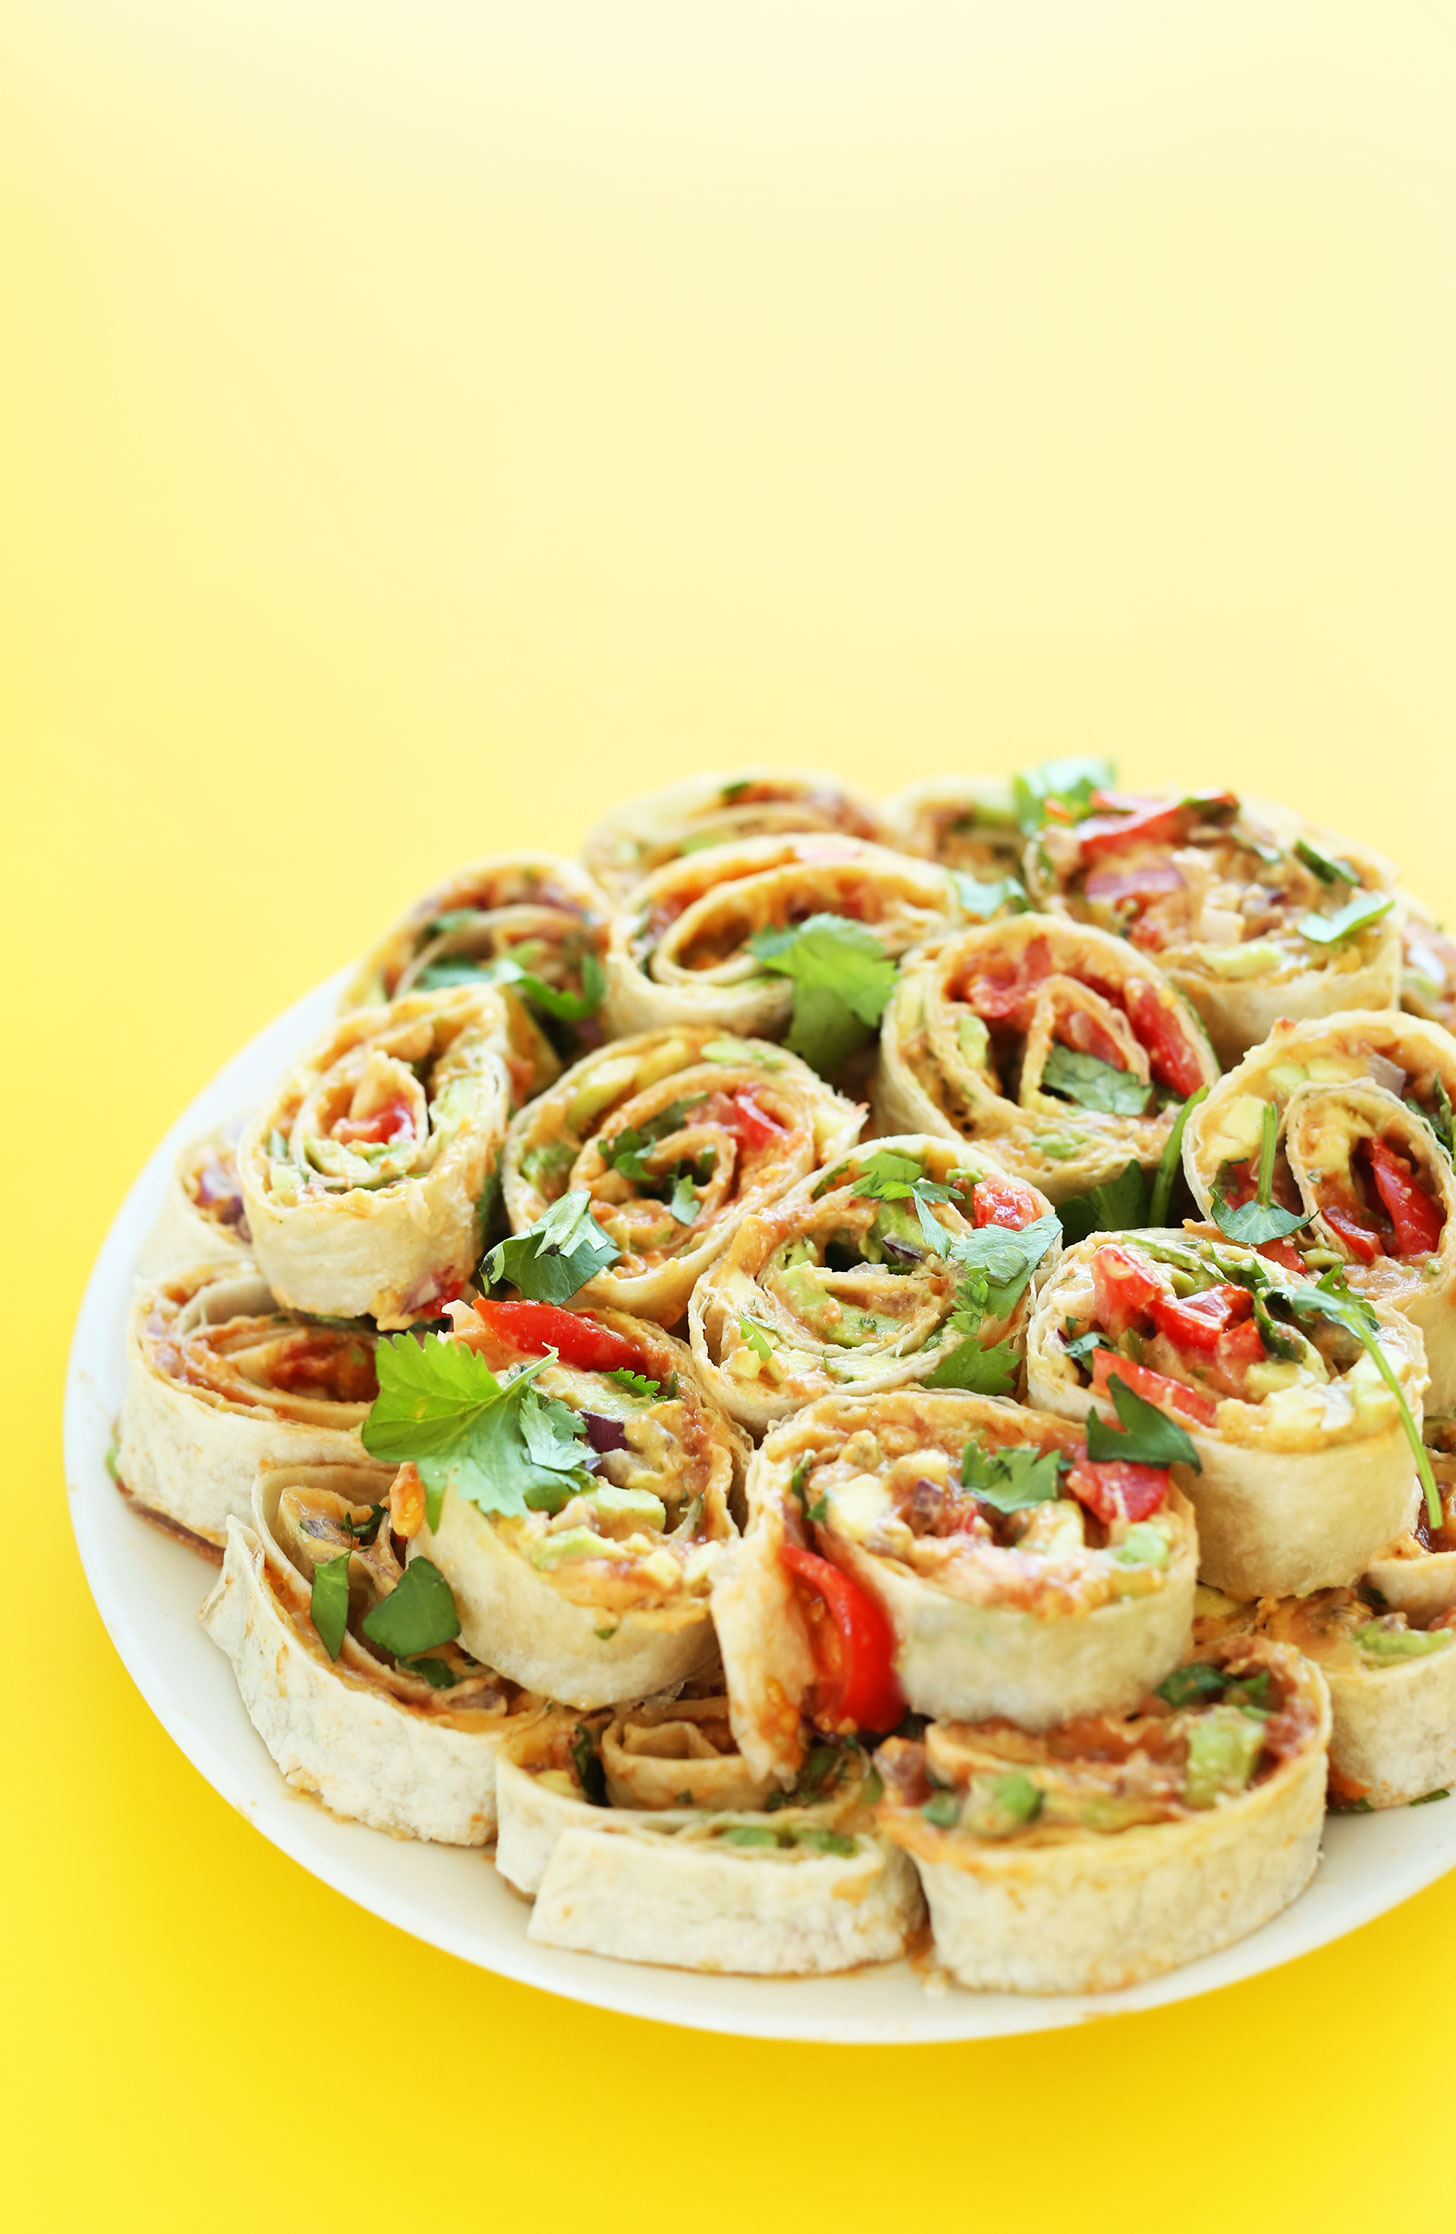 Plate filled with our Mexican Pinwheels recipe with refried beans, avocado, onion, cilantro, and tomato